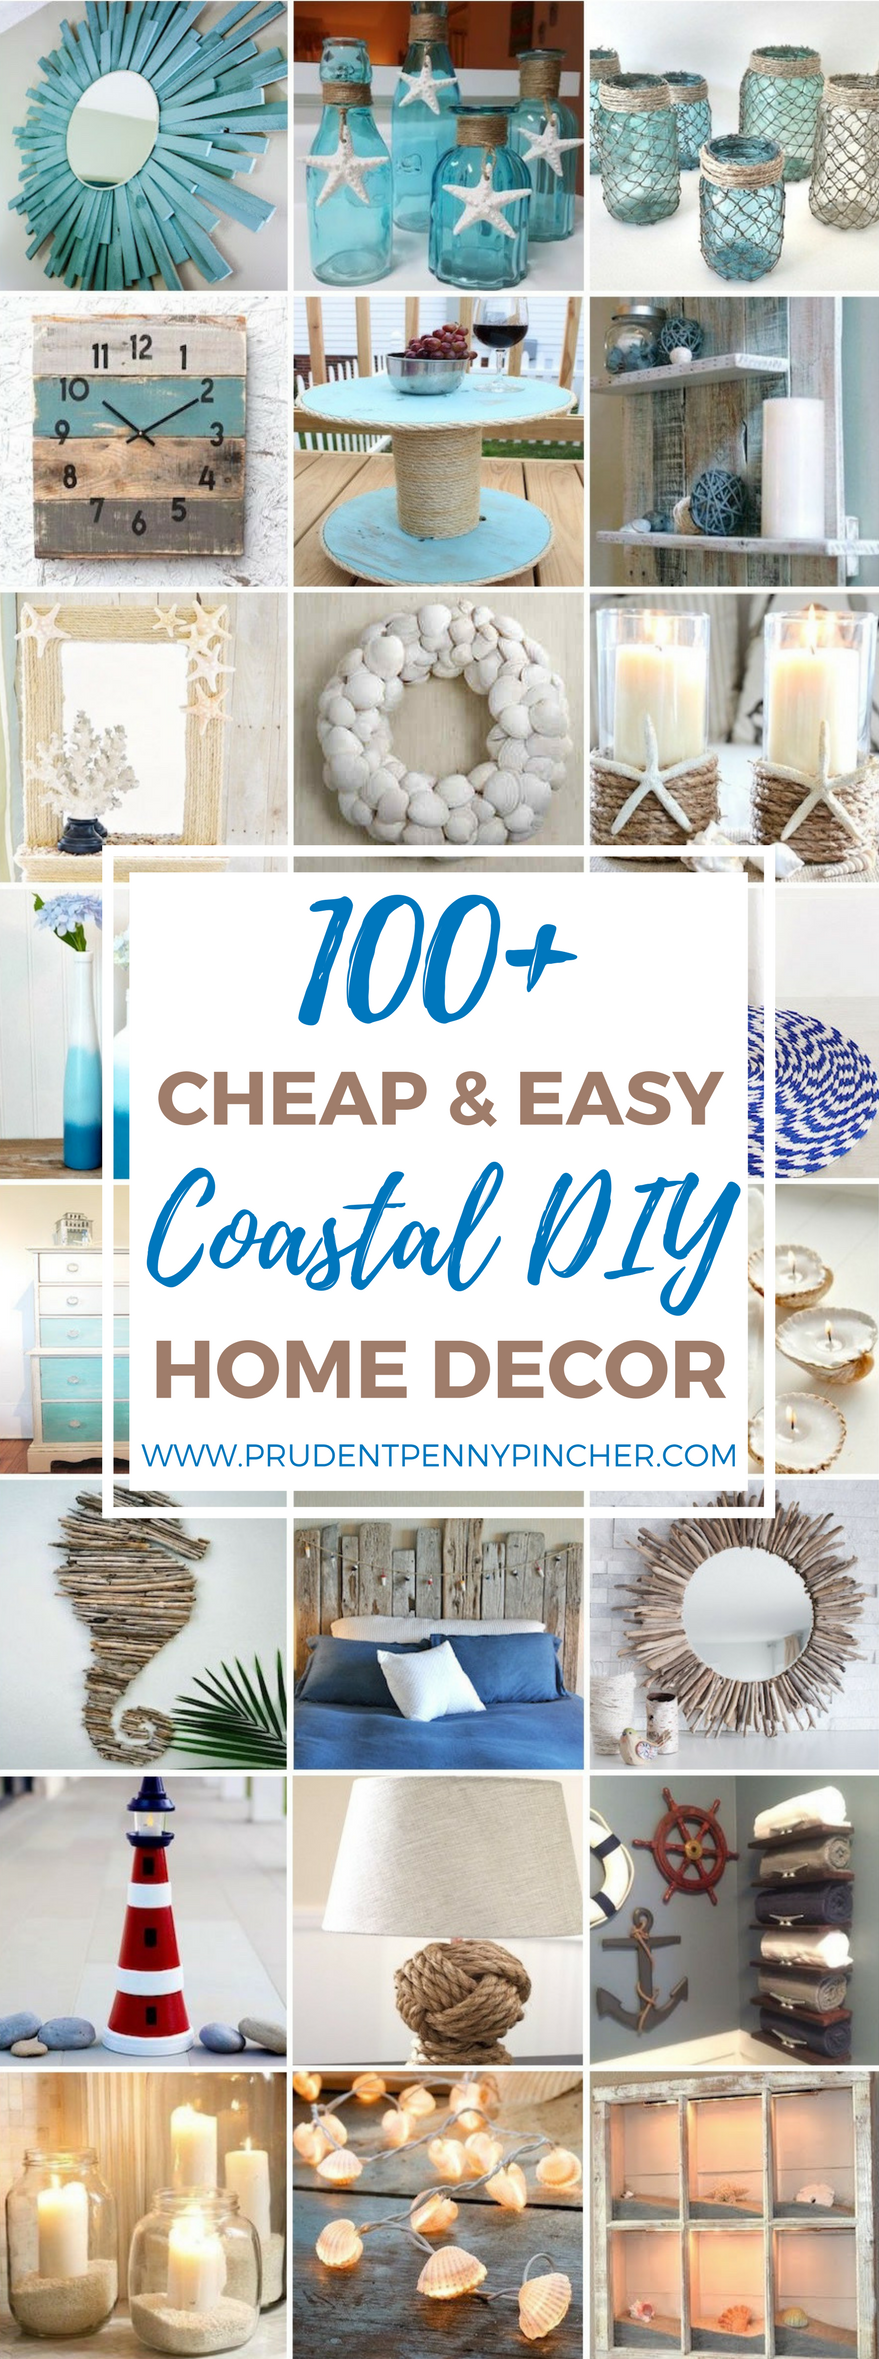 Here Is A Round Up Of The Best Cheap And Easy Coastal DIY Home Decor  Projects On The Internet So That You Can Bring Some Of The Beach To Your  Home.